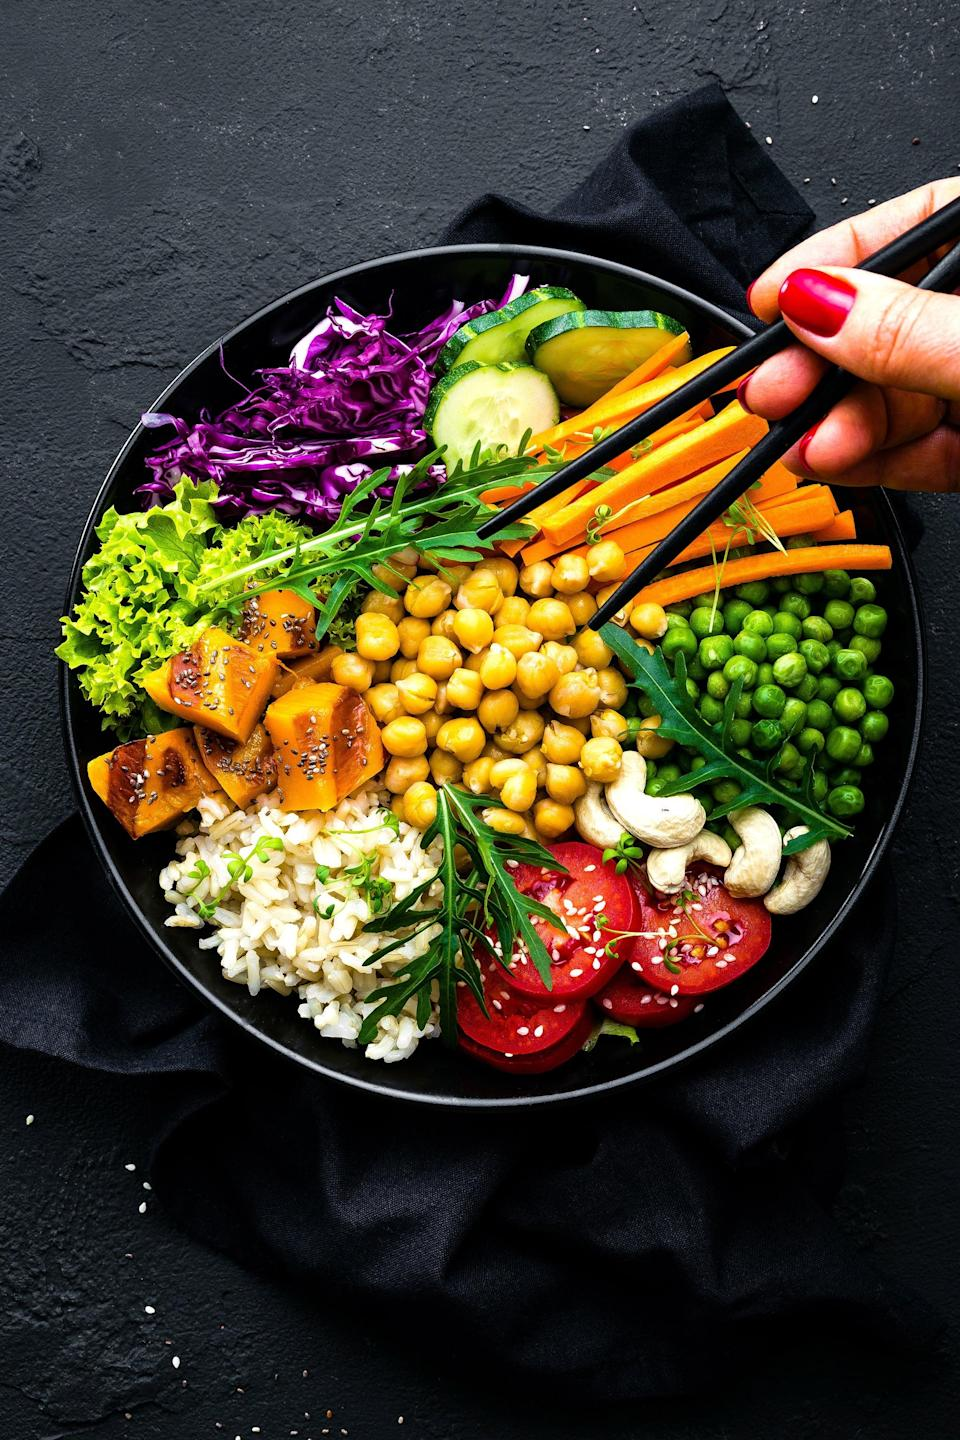 The Mediterranean diet. Which is typically ranked the best diet for weight loss.